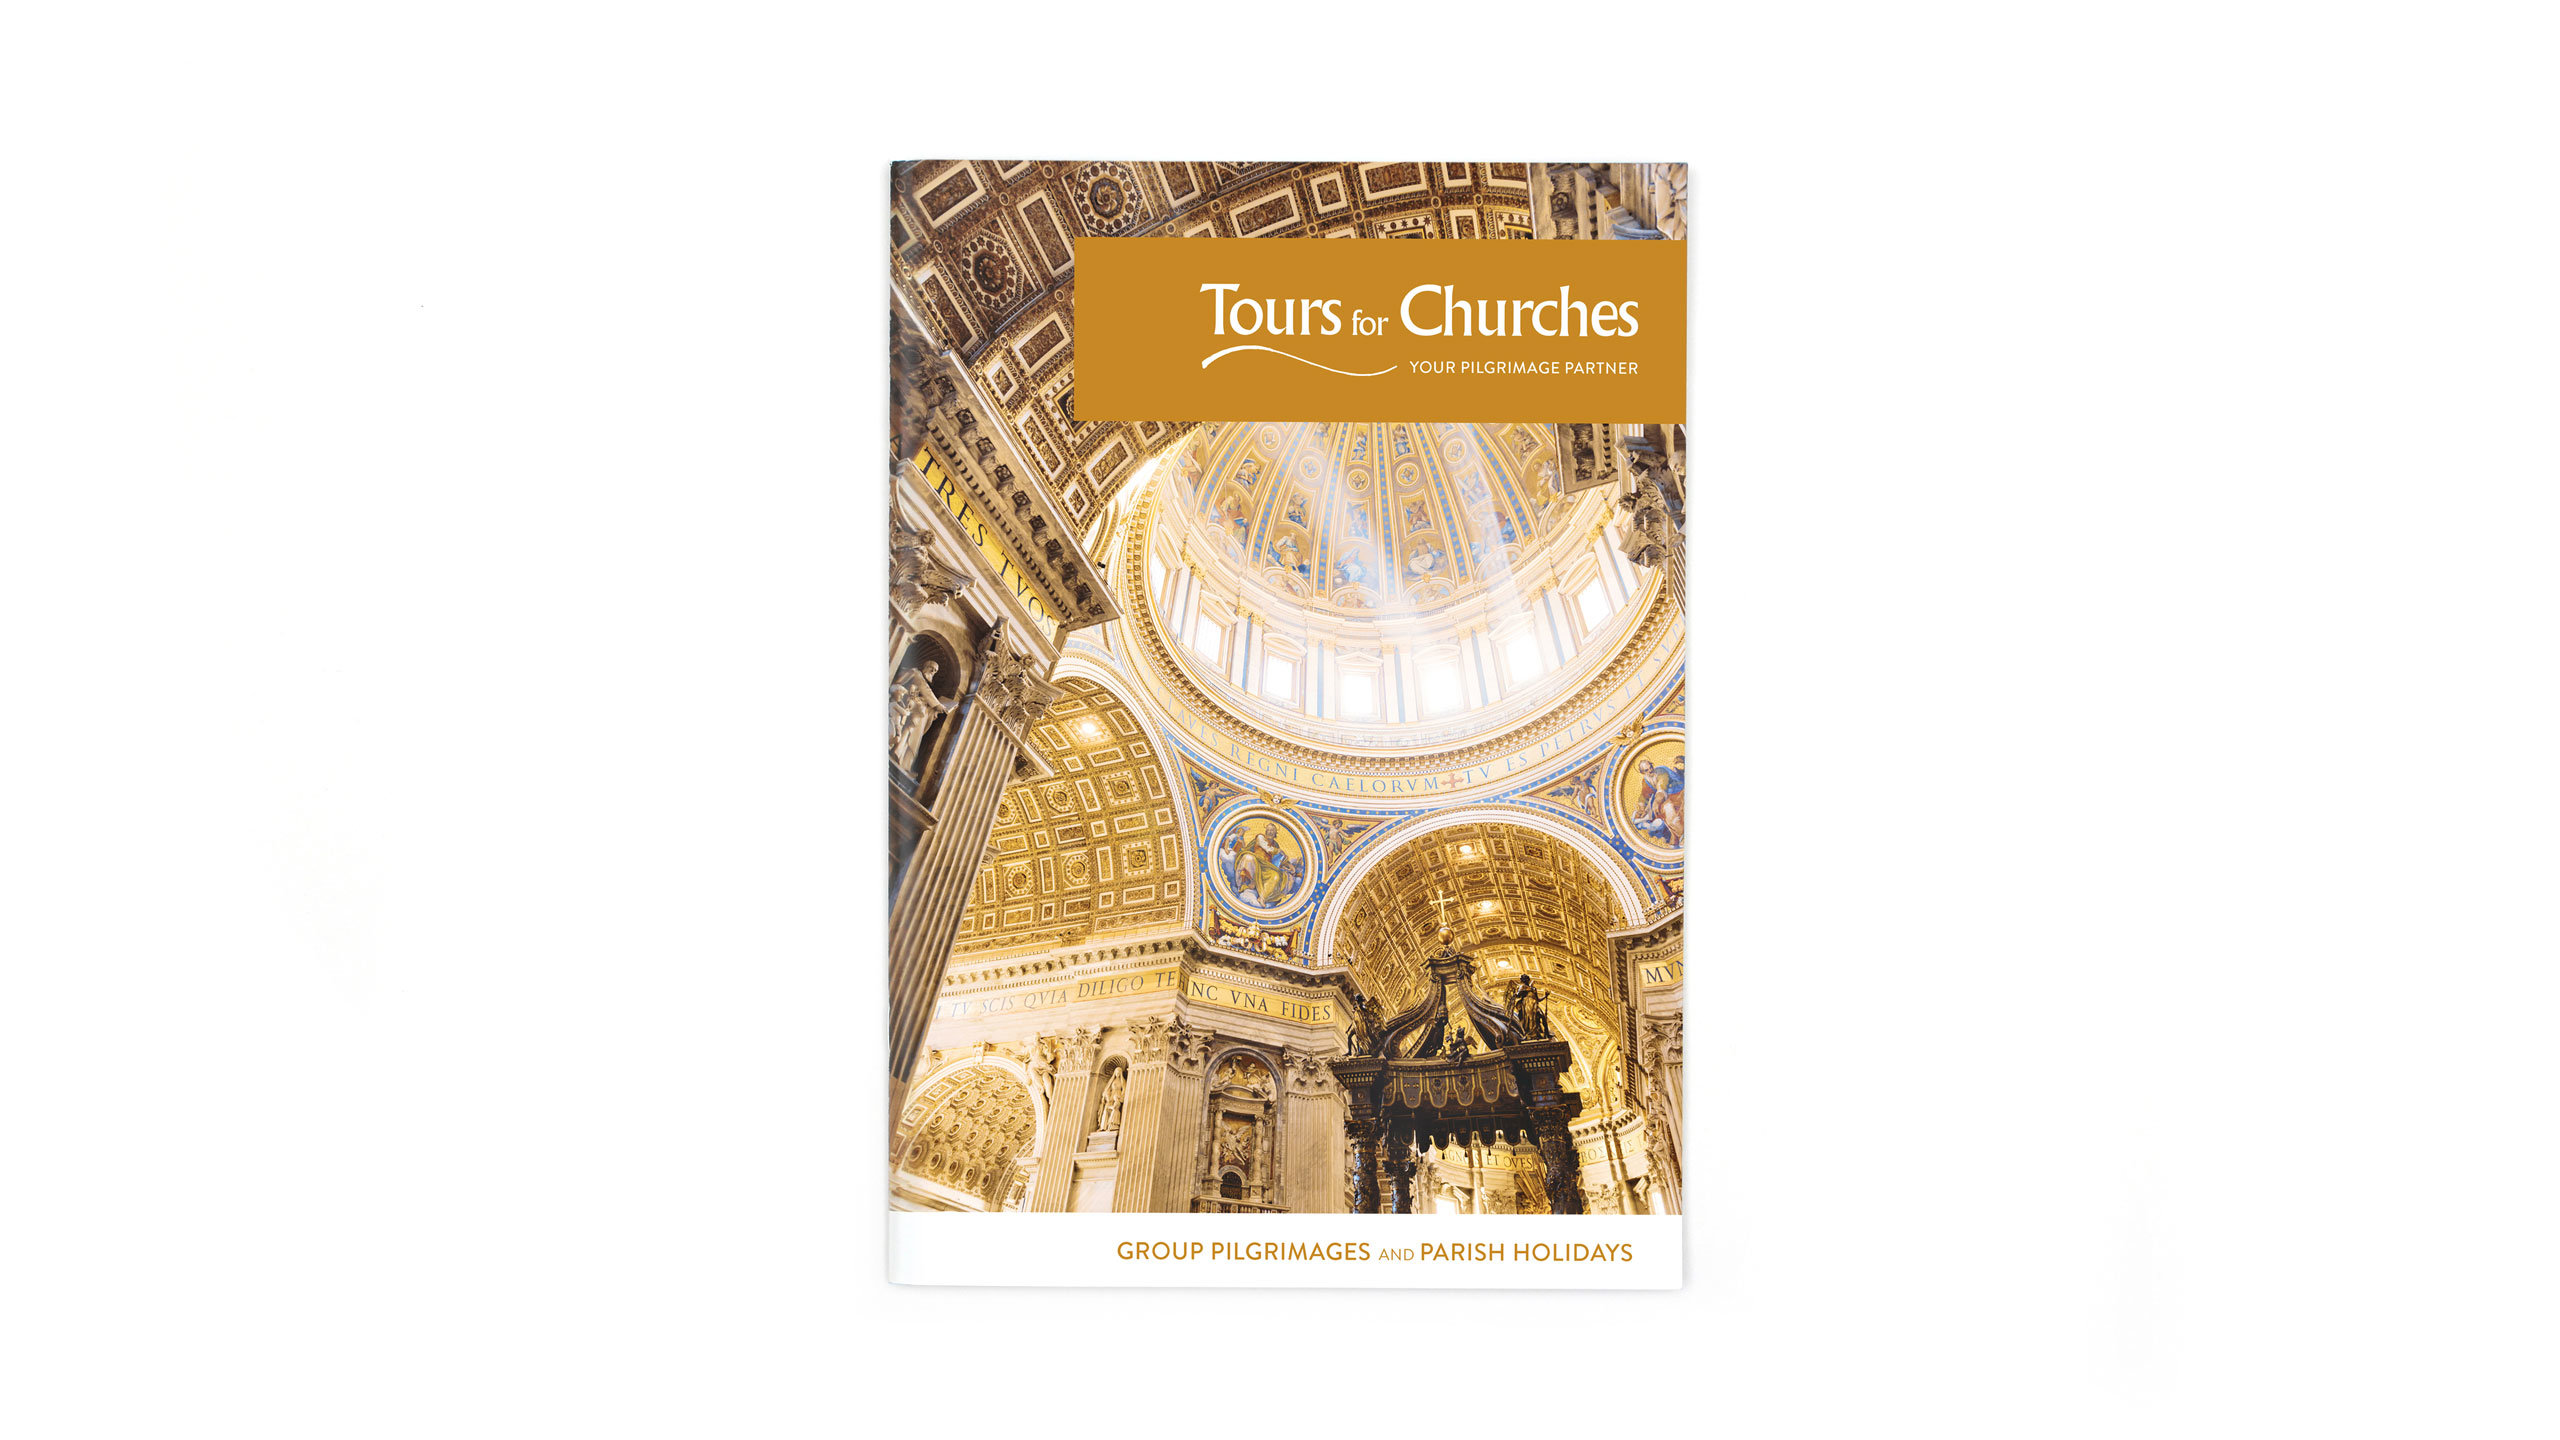 Tours for-Churches brochure cover